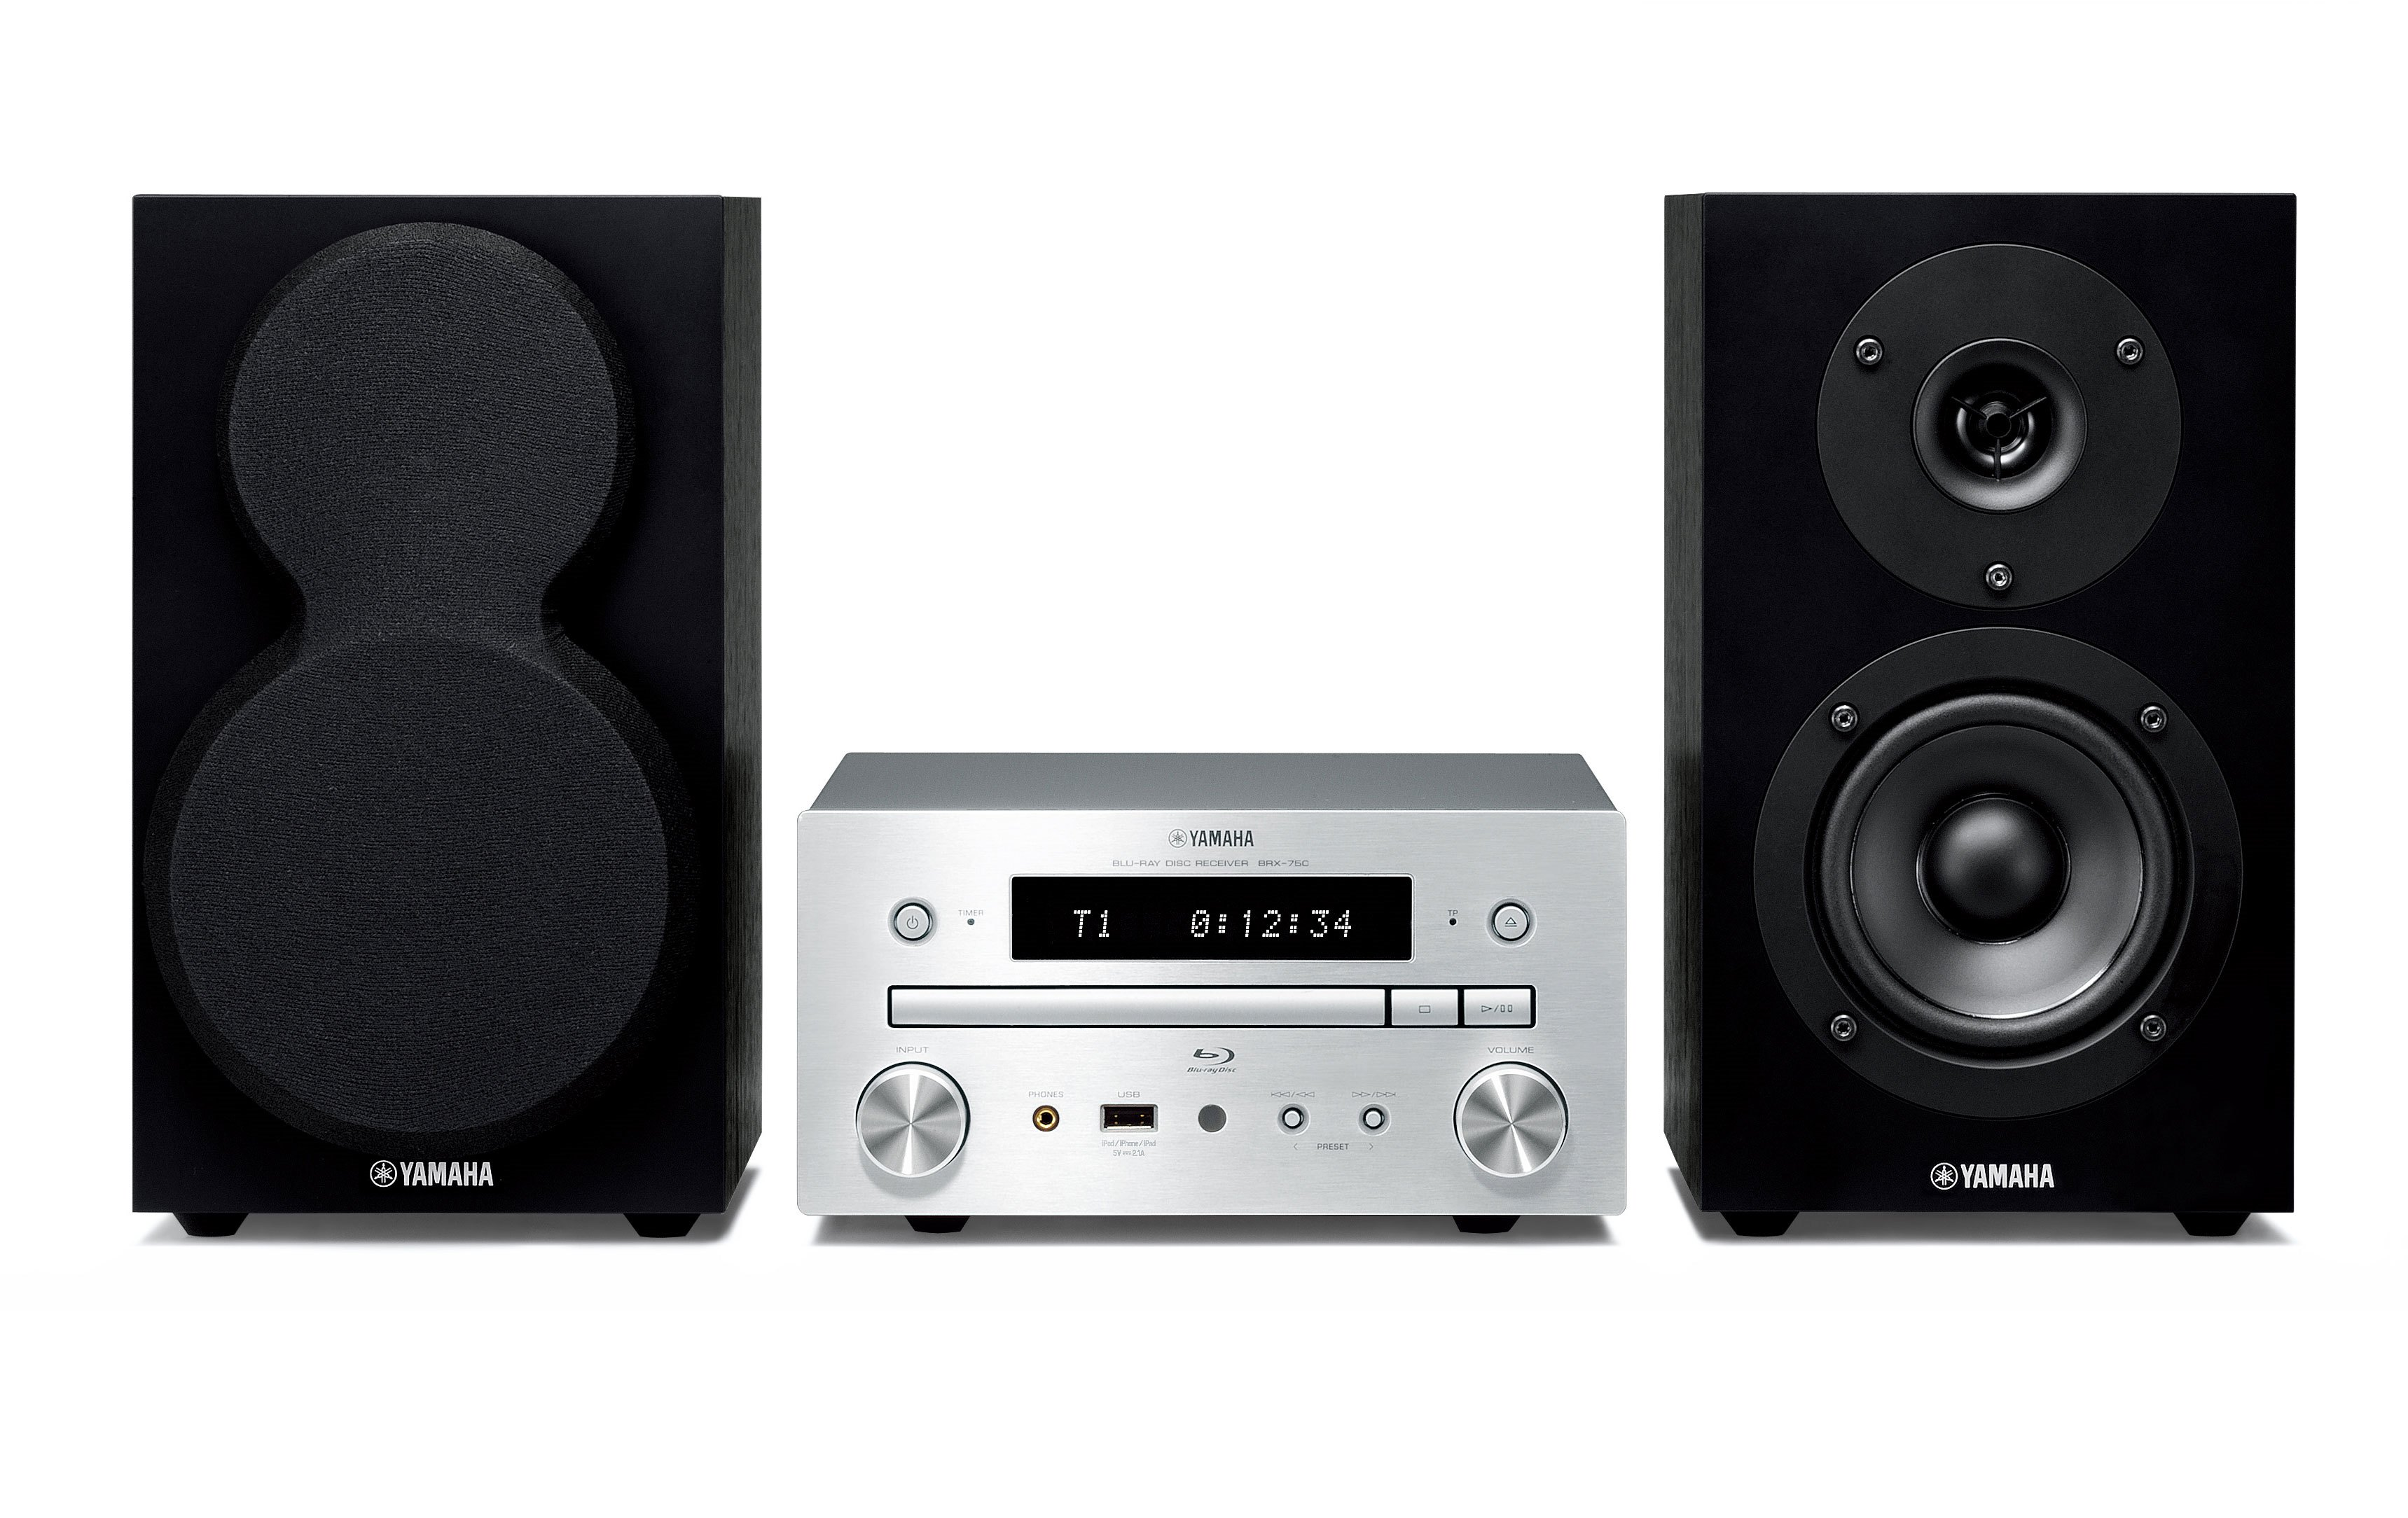 mcr 750 overview hifi systems audio visual products yamaha other european countries. Black Bedroom Furniture Sets. Home Design Ideas